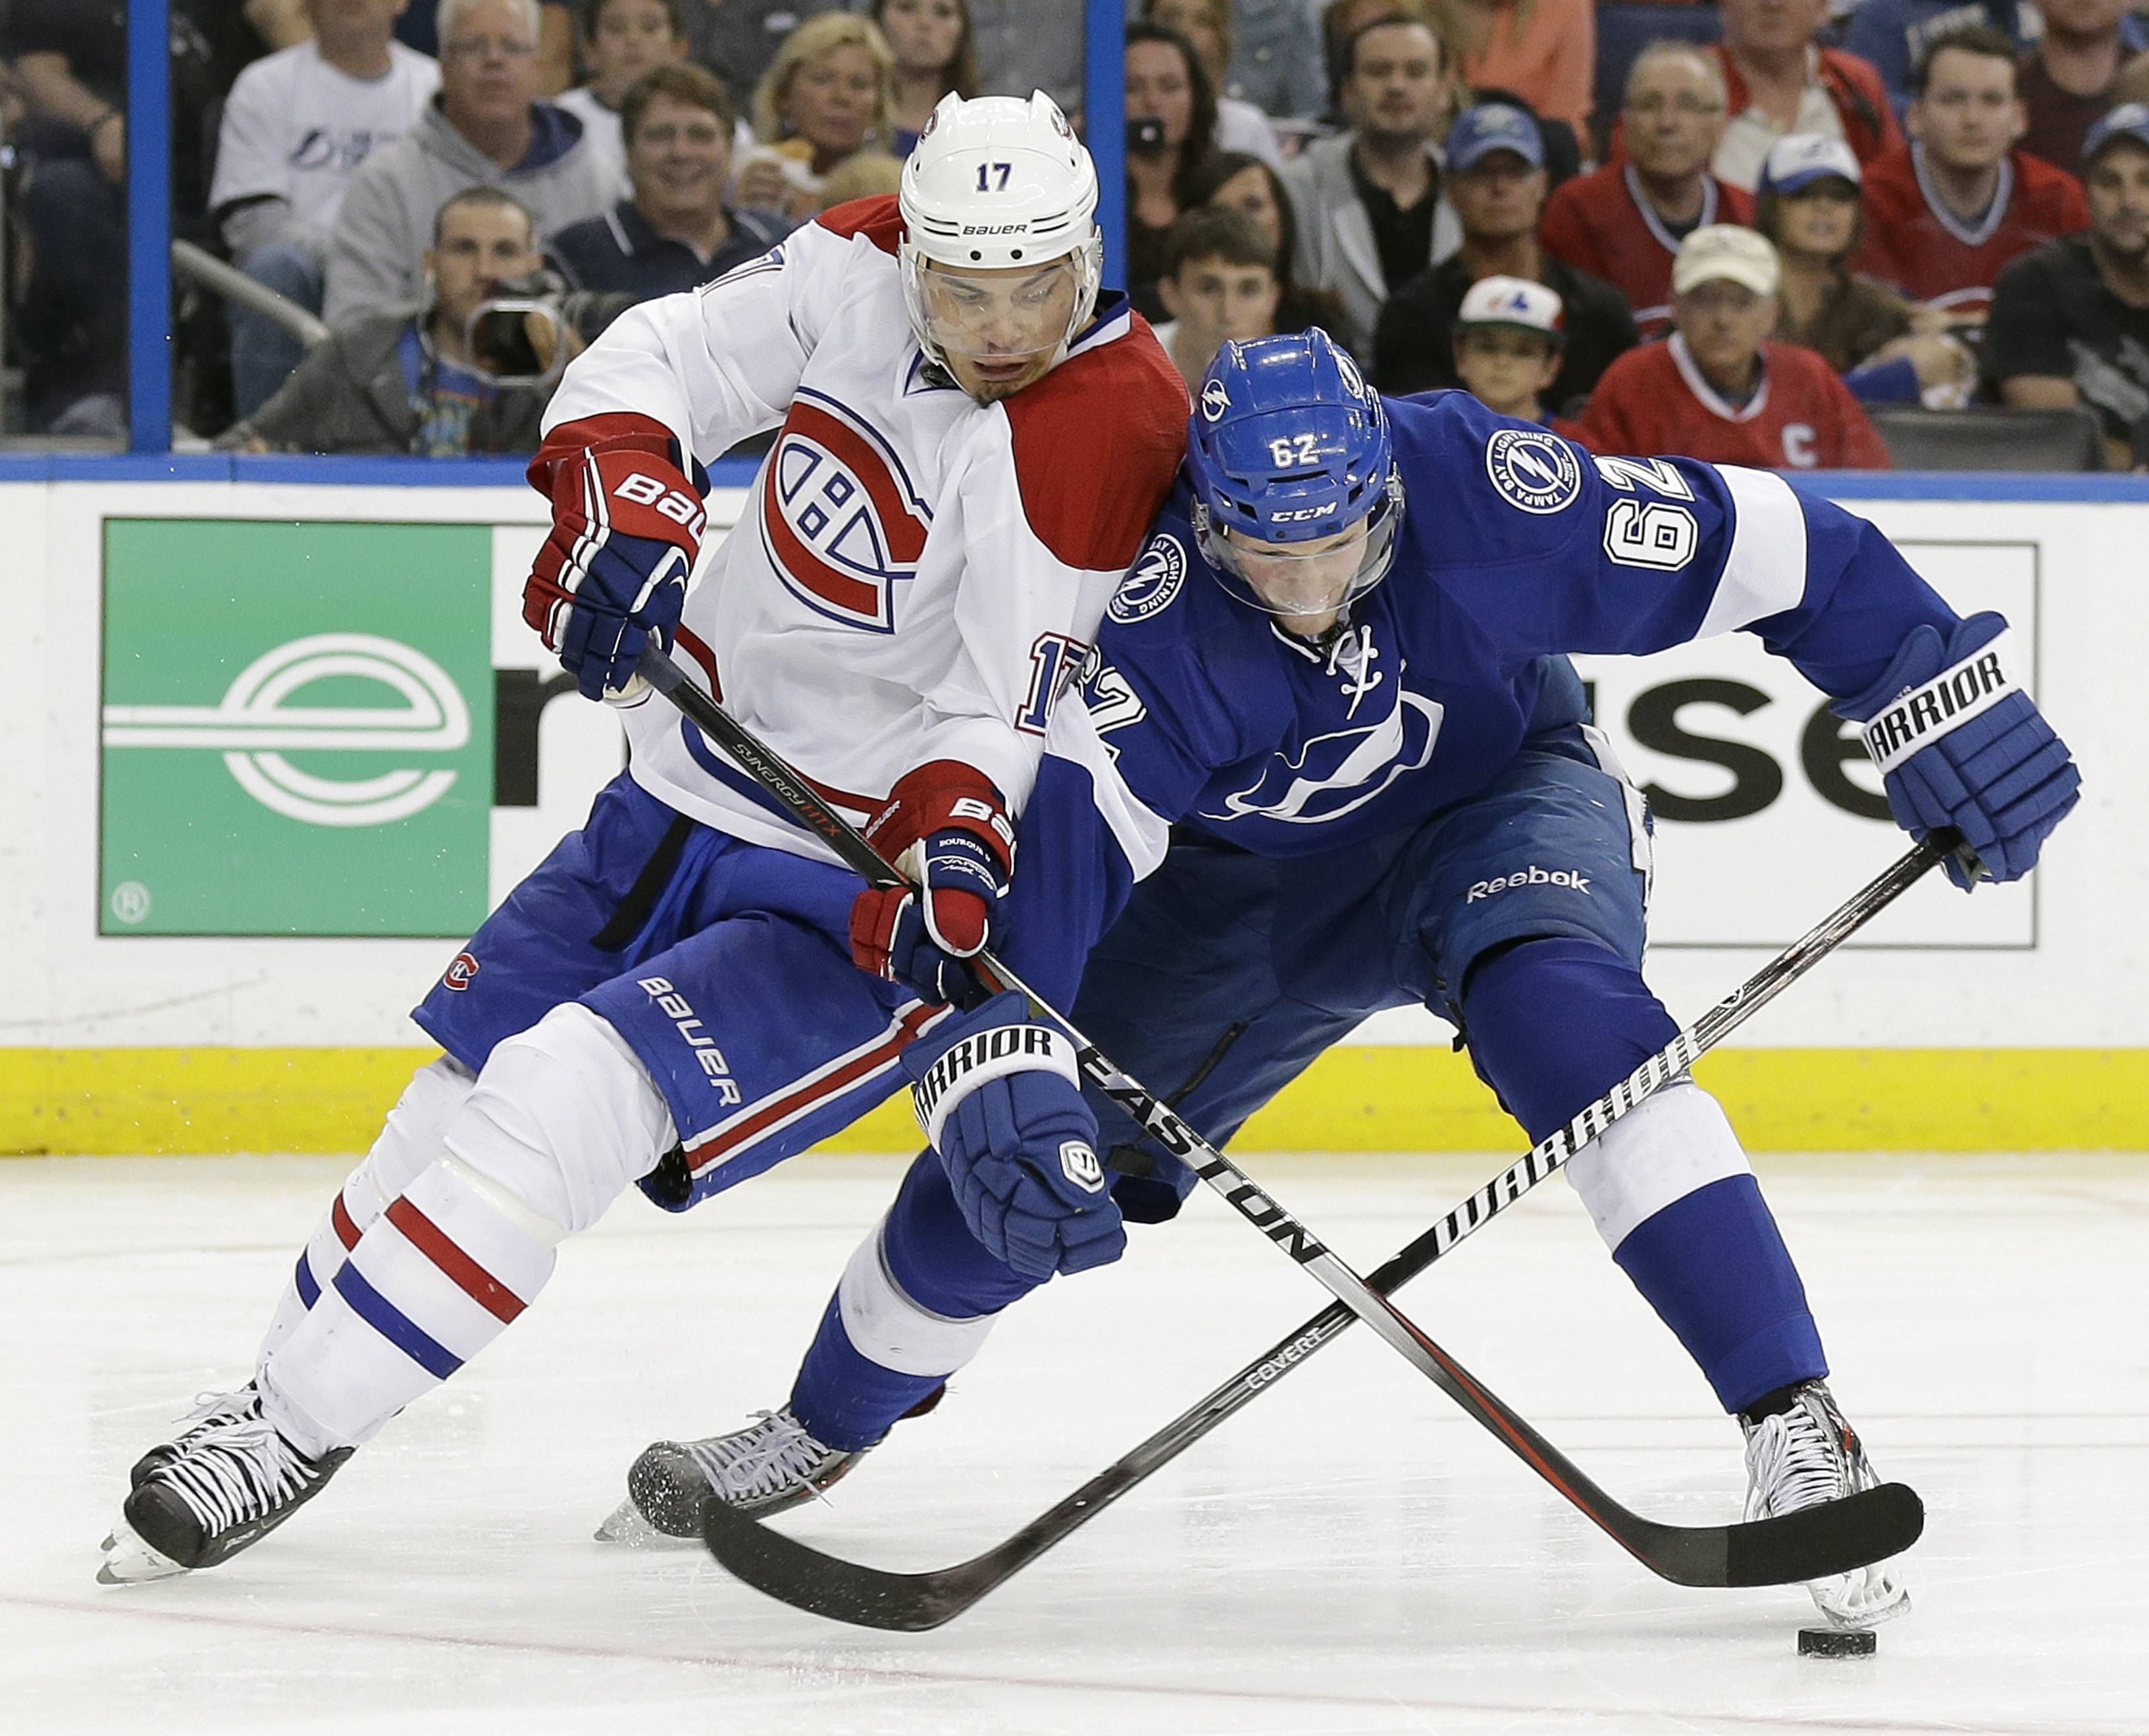 Montreal Canadiens left wing Rene Bourque (17) battles Tampa Bay Lightning defenseman Andrej Sustr (62), of the Czech Republic, for the puck during the third period of Game 2 of a first-round NHL hockey playoff series on Friday, April 18, 2014, in Tampa, Fla.